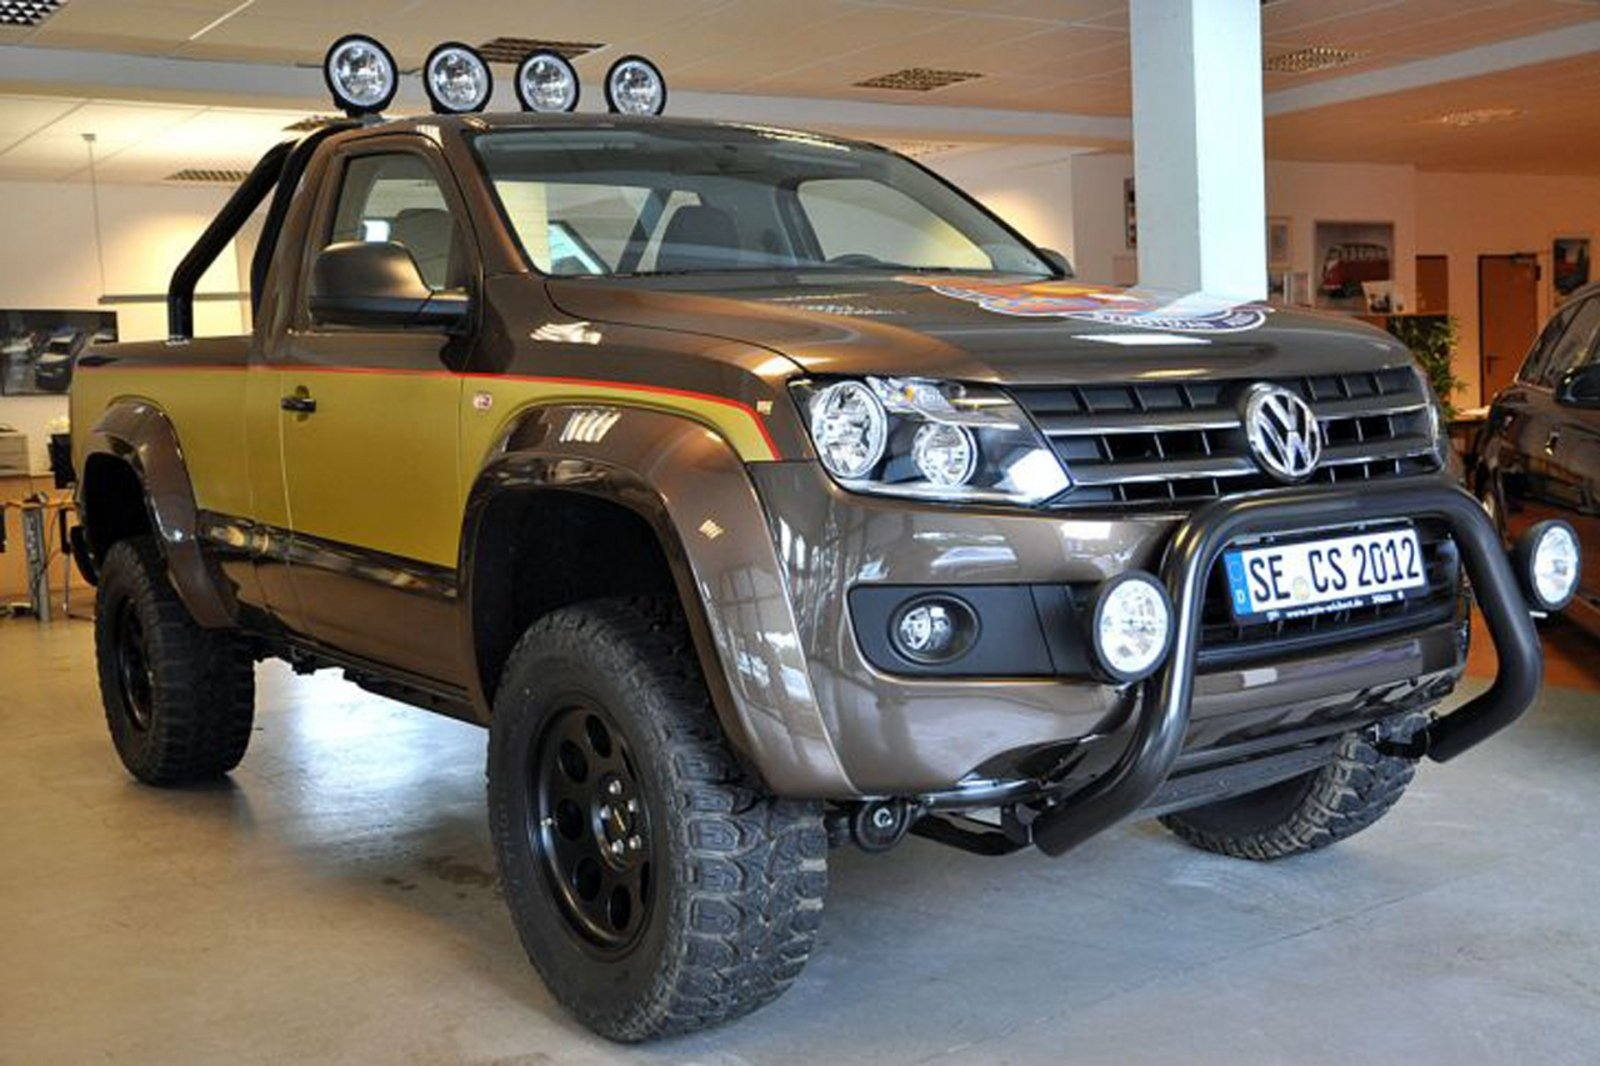 2012 volkswagen amarok colt seaver edition review top speed. Black Bedroom Furniture Sets. Home Design Ideas